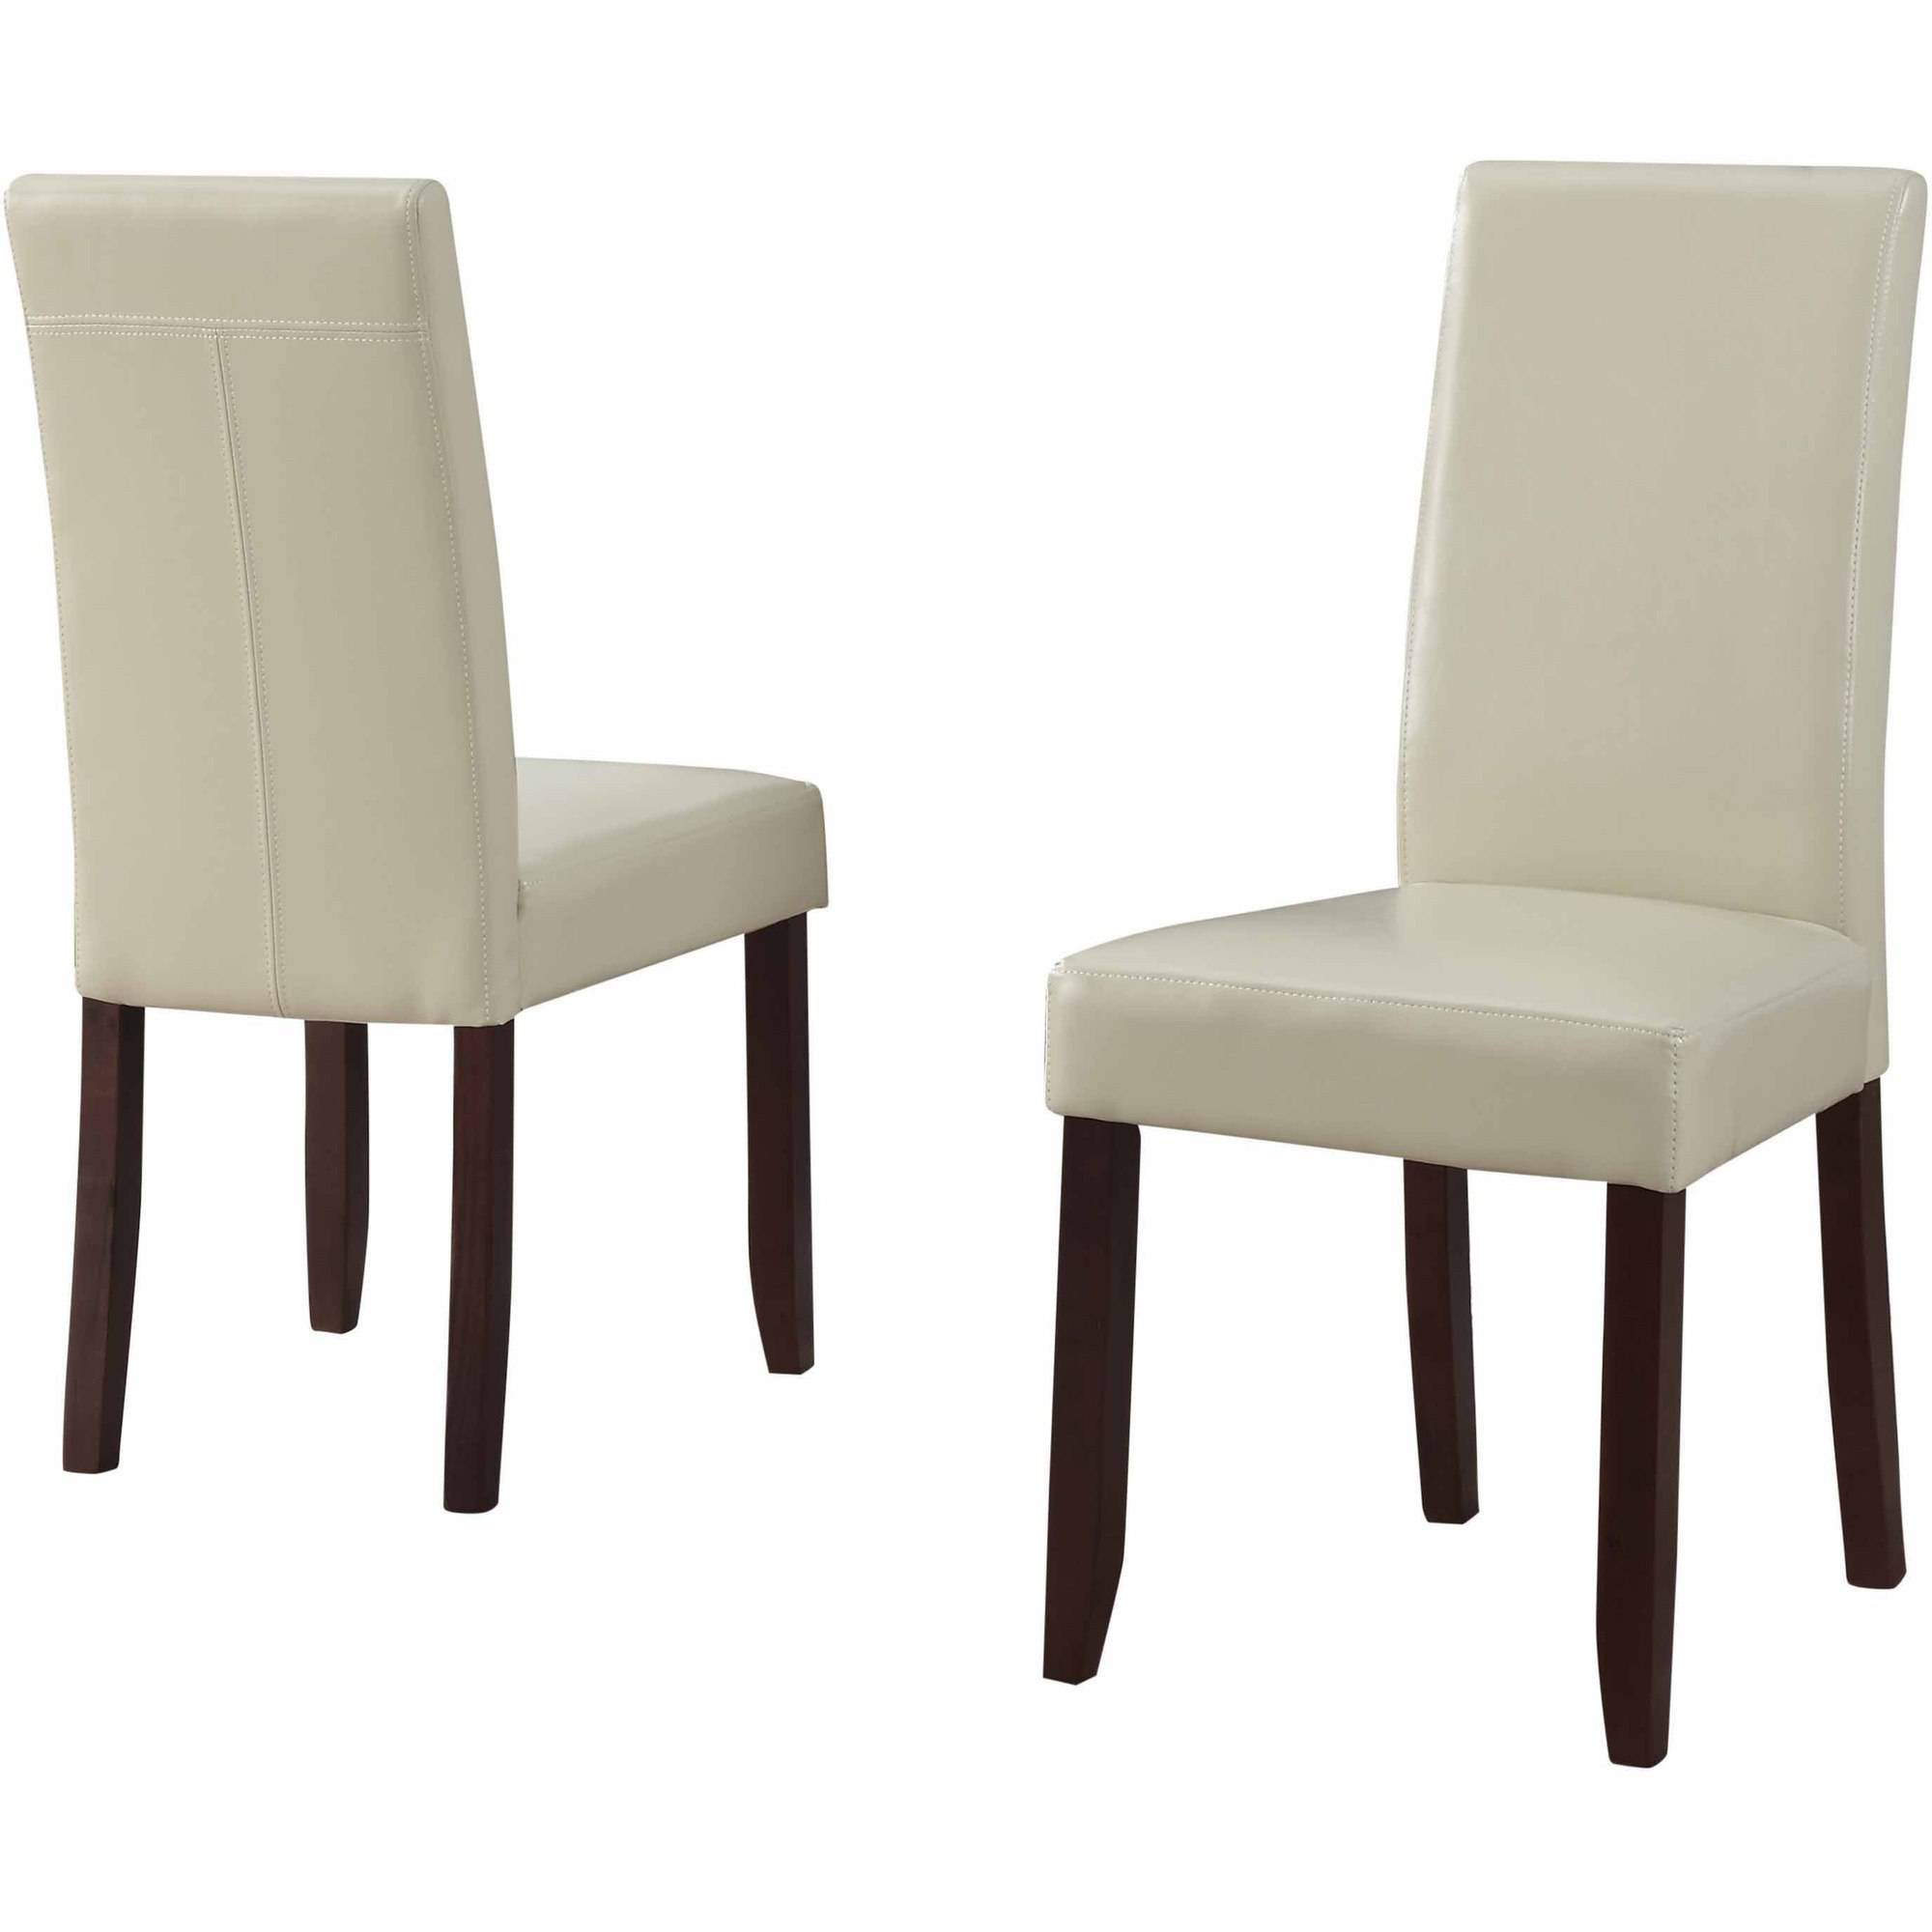 dining chair $100-$150 RWUSDTH